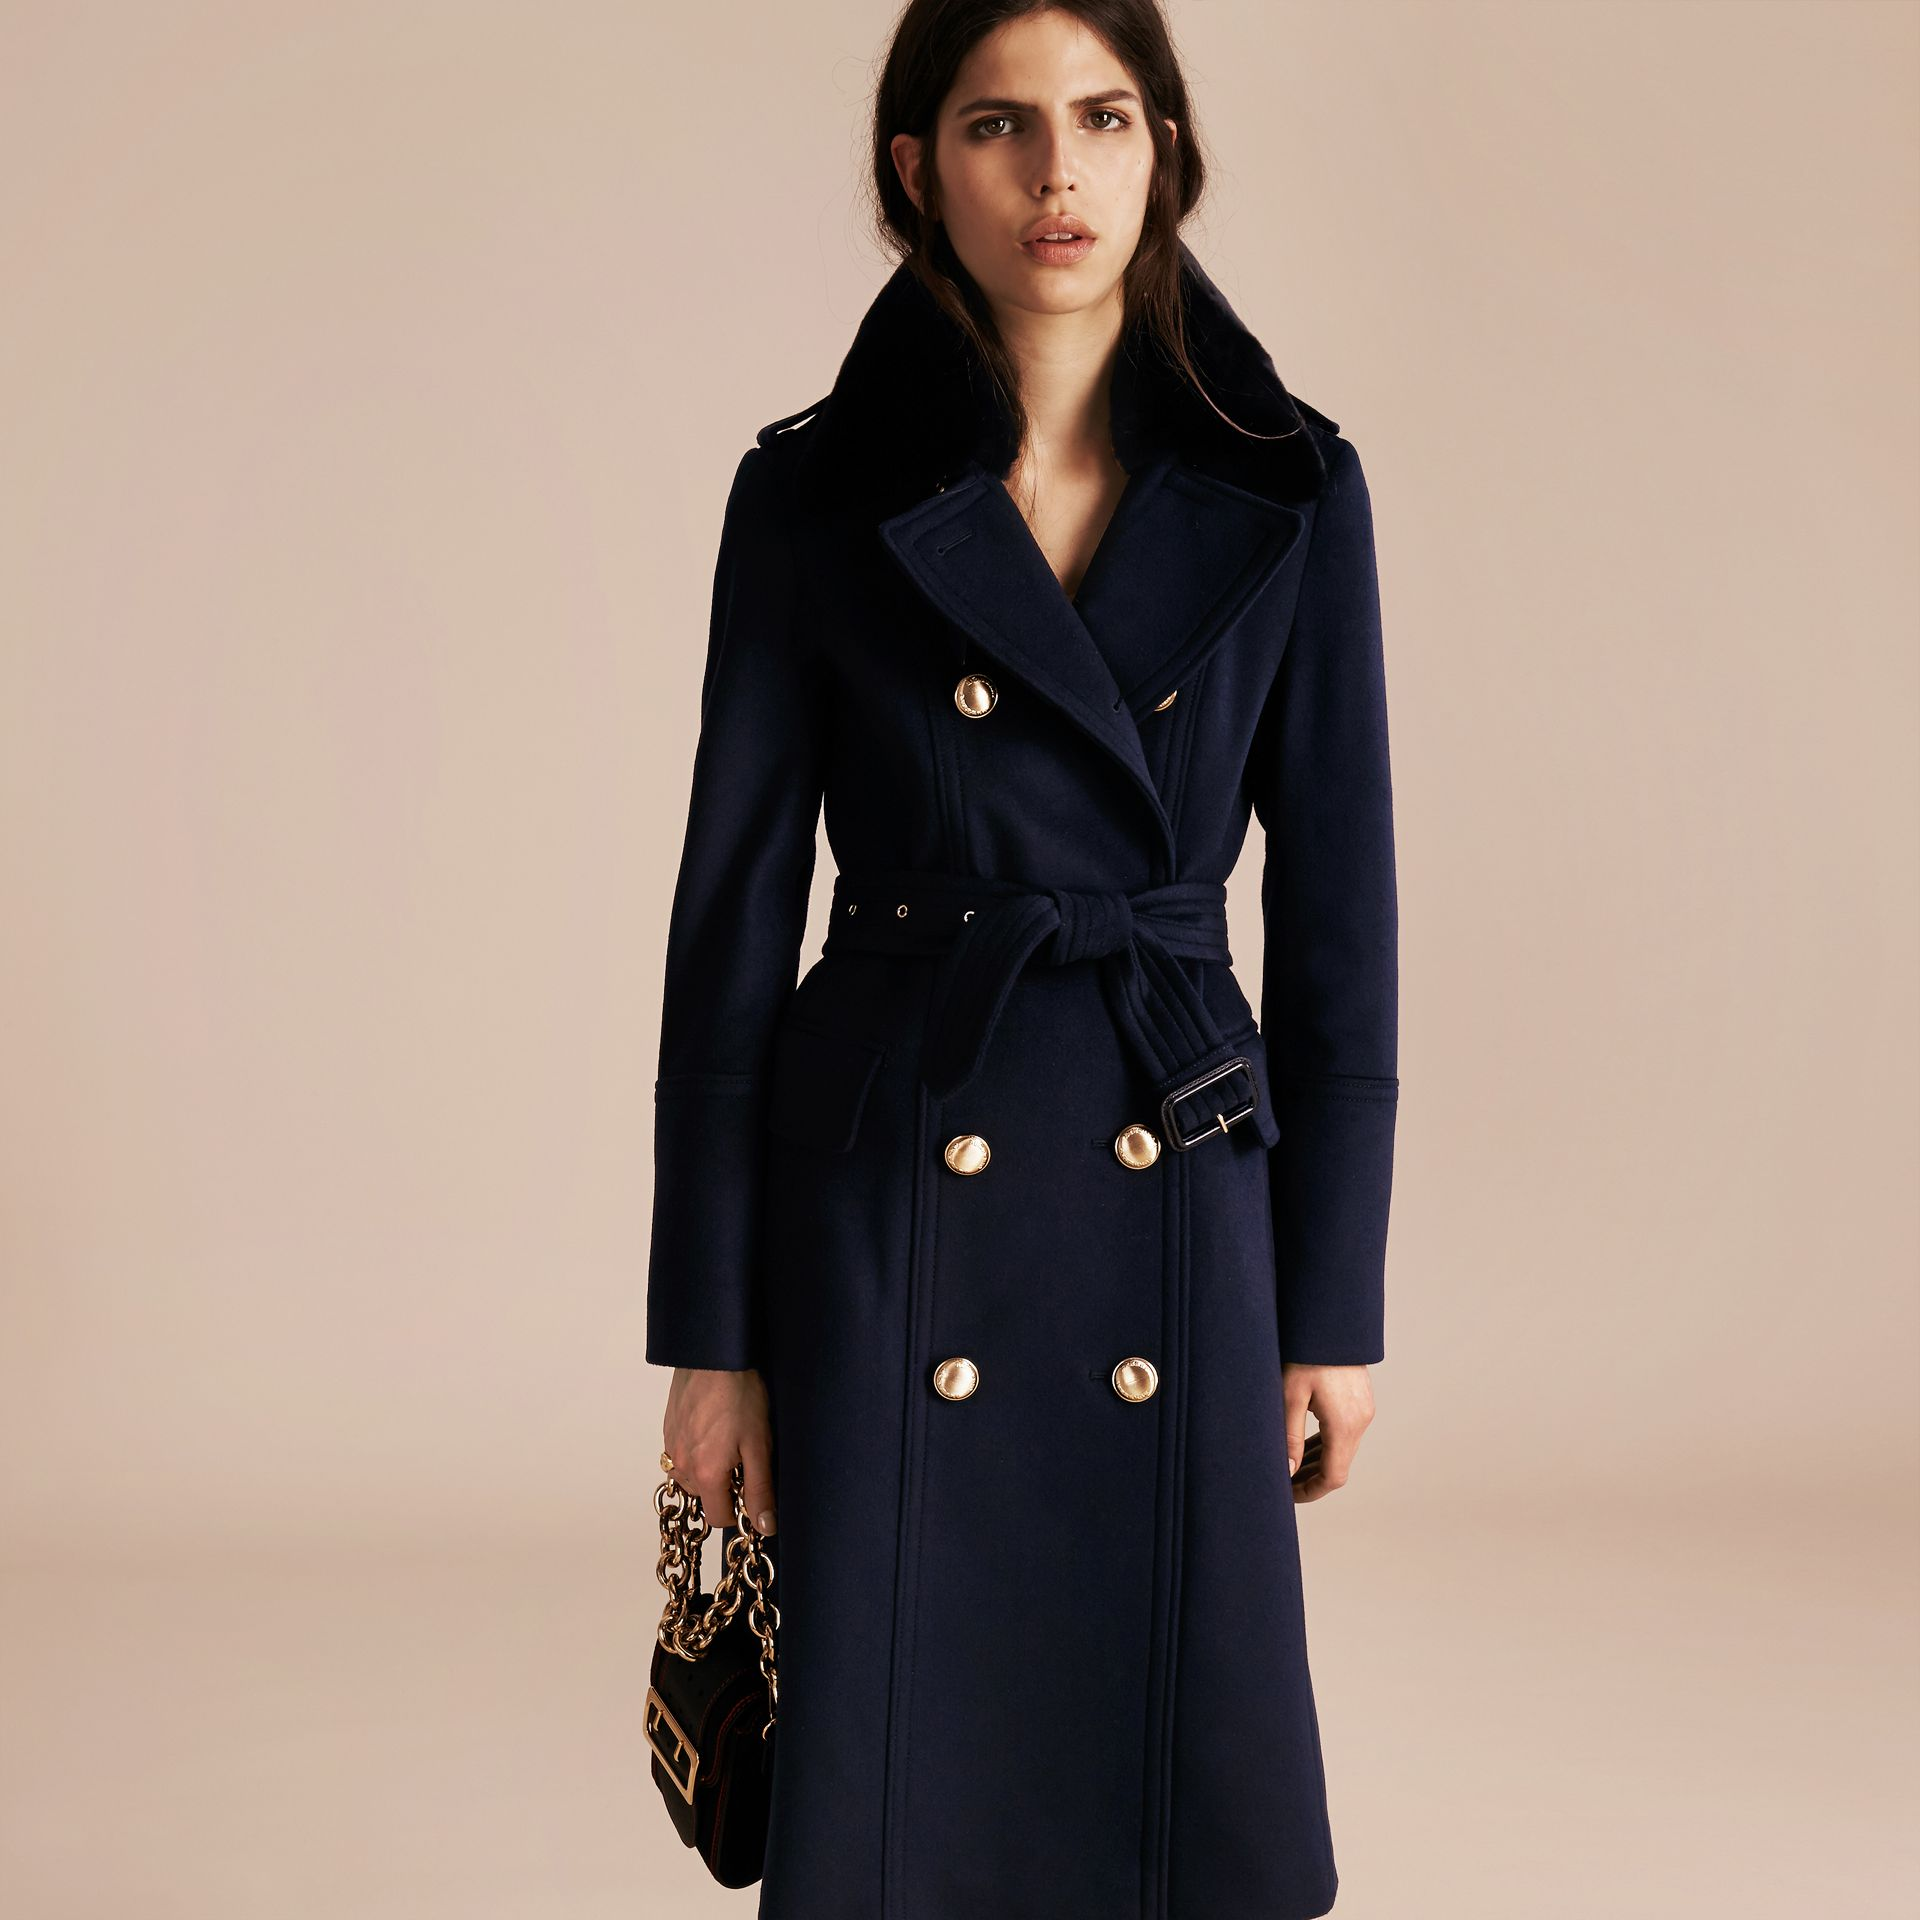 Navy Wool Cashmere Trench Coat with Detachable Fur Collar - gallery image 7